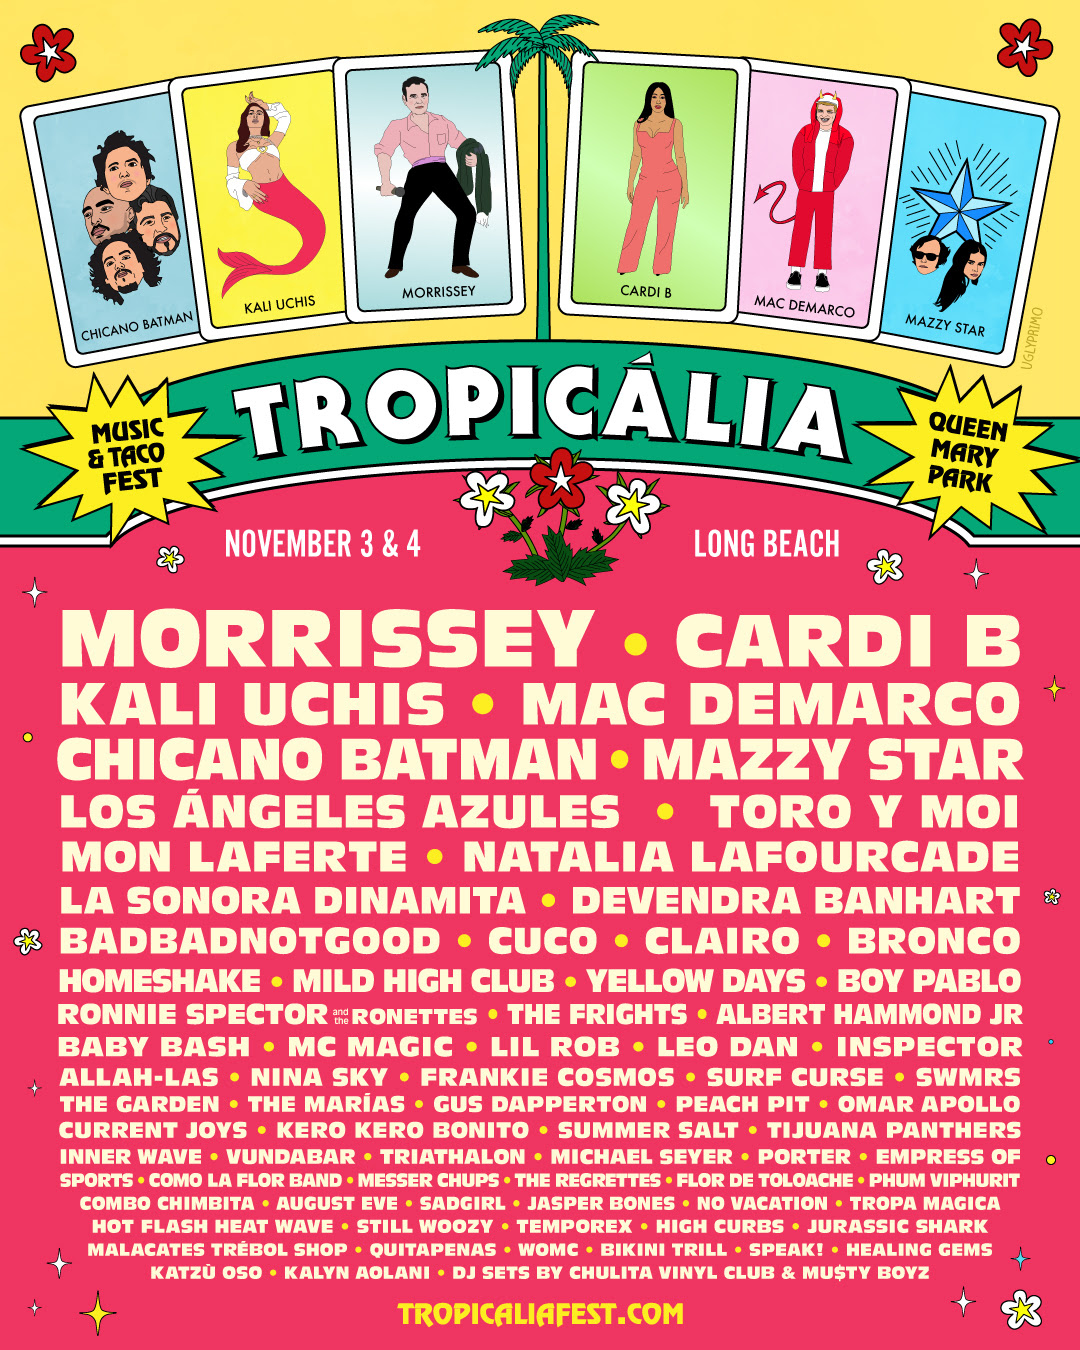 Tropicalia Music Taco Festival At The Queen Mary In Long Beach